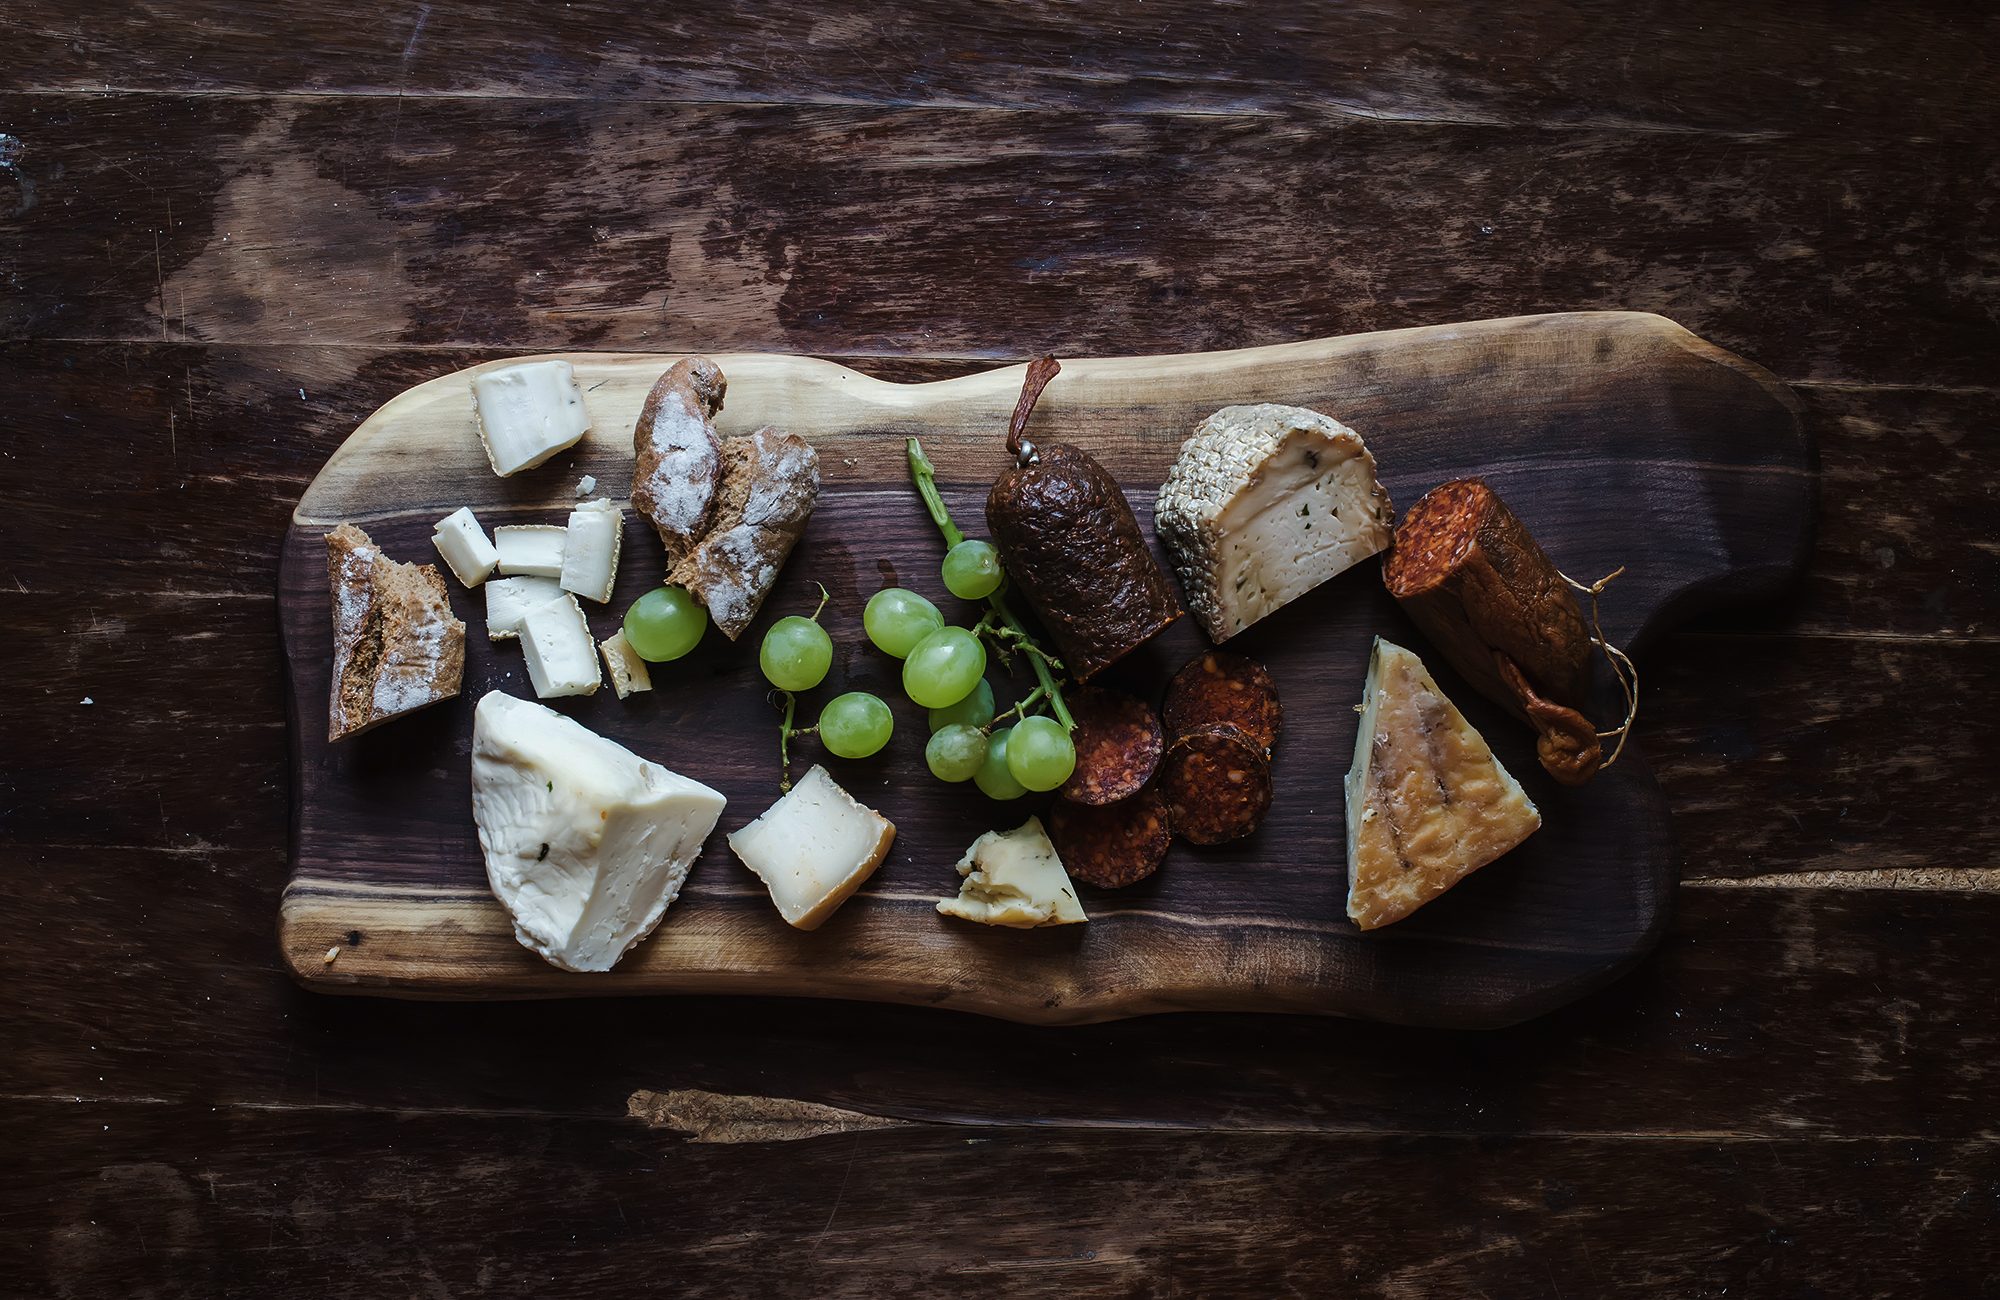 Wine appetizers set: meat and cheese selection, grapes, bread on rustic wooden board over dark wood background.